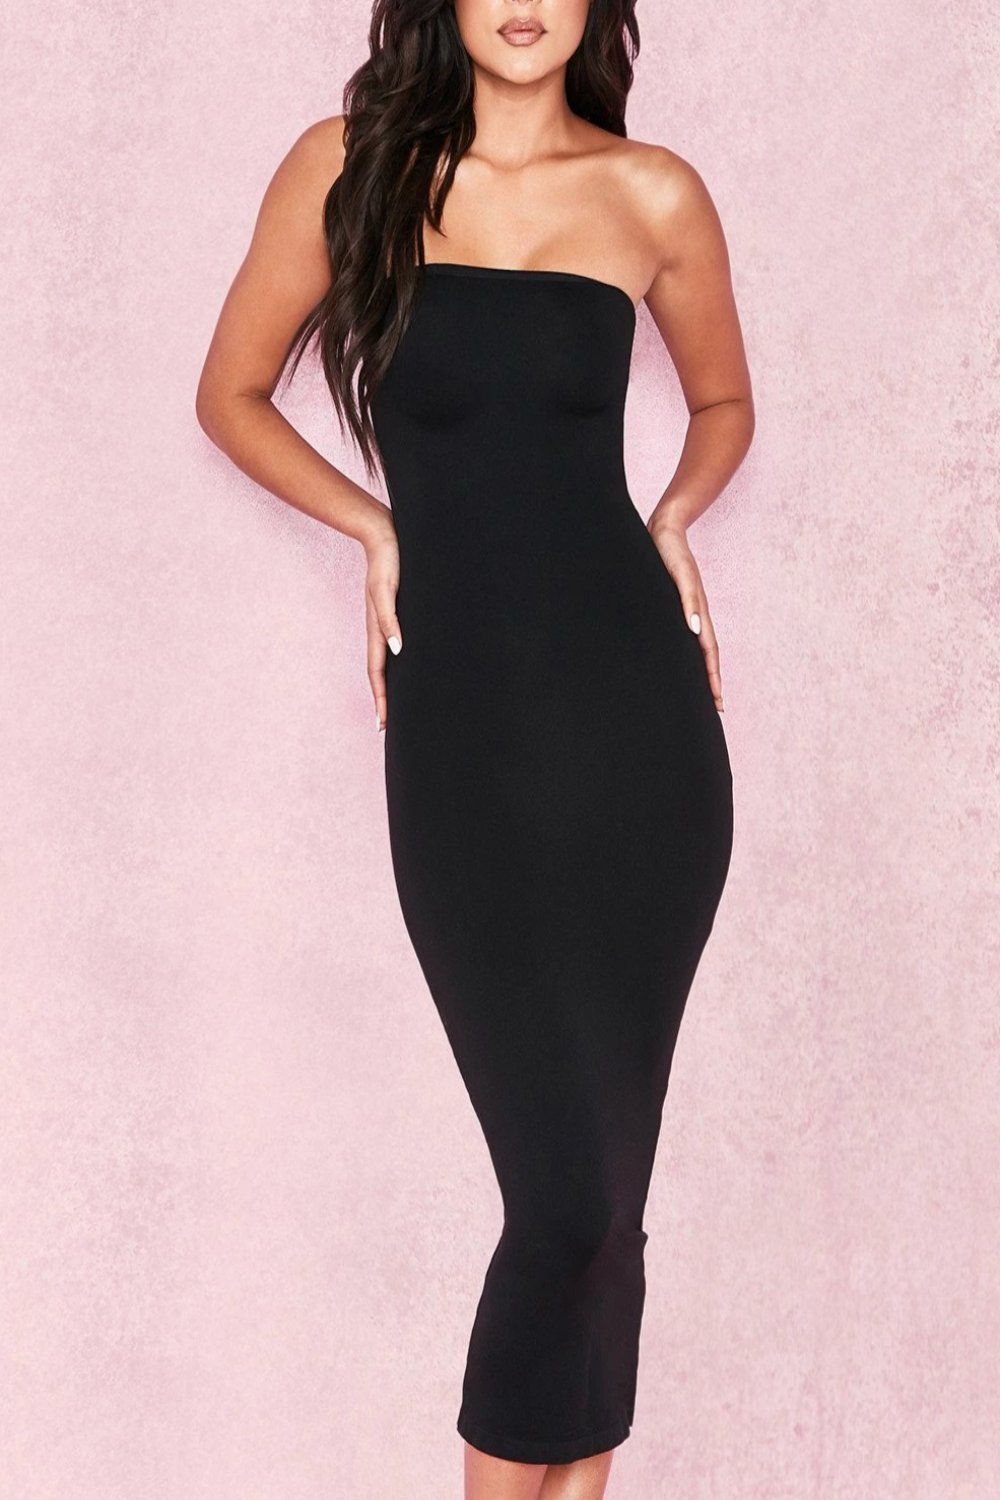 Black Strapless Seamless Knit Dress